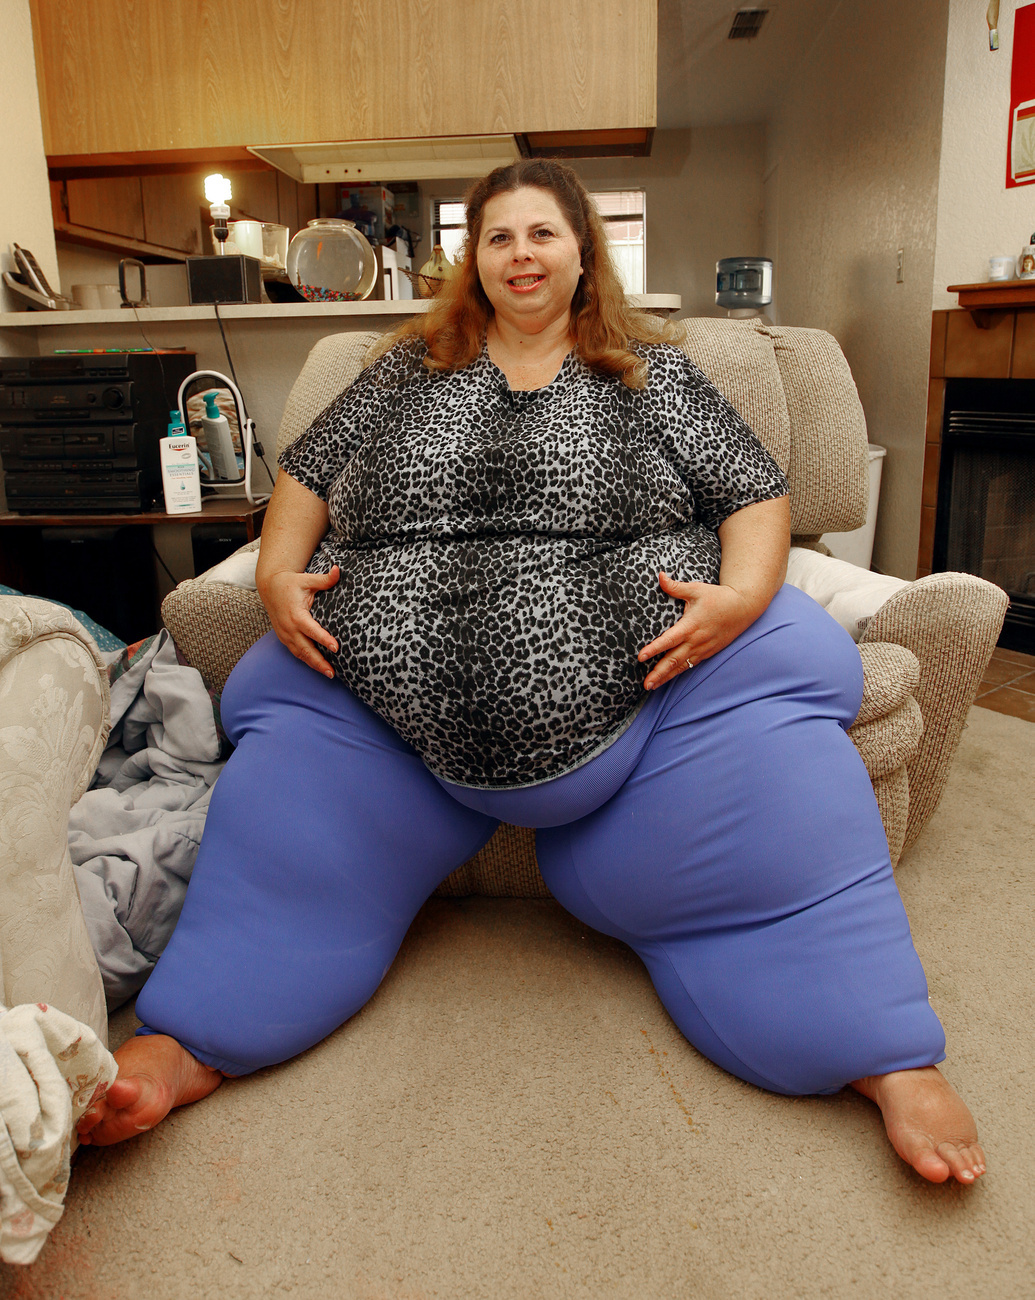 Something biggest fattest woman in the world interesting